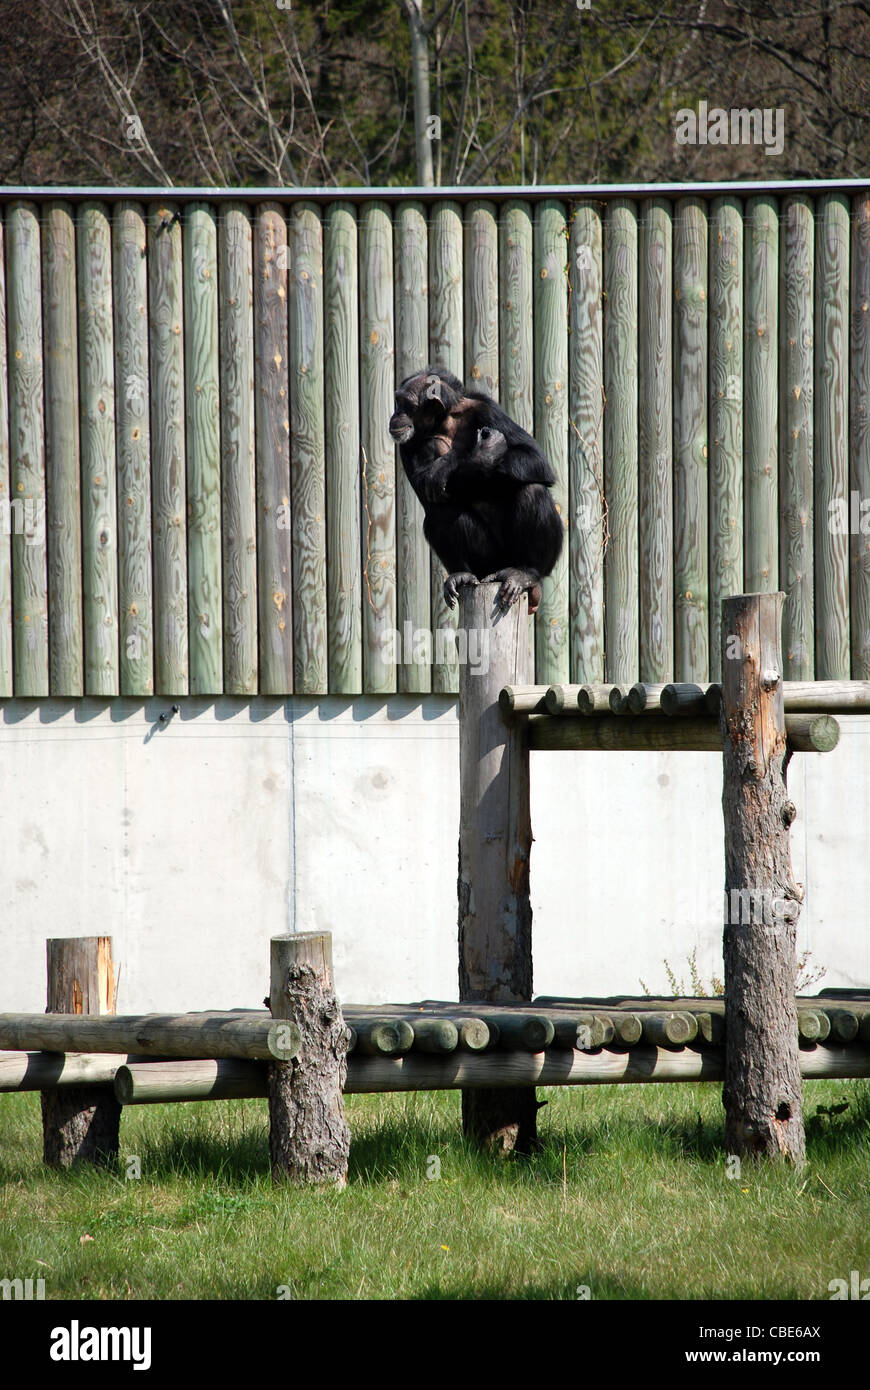 Zoo Life - Chimpanzee Sitting at the Top of Fence - Stock Image